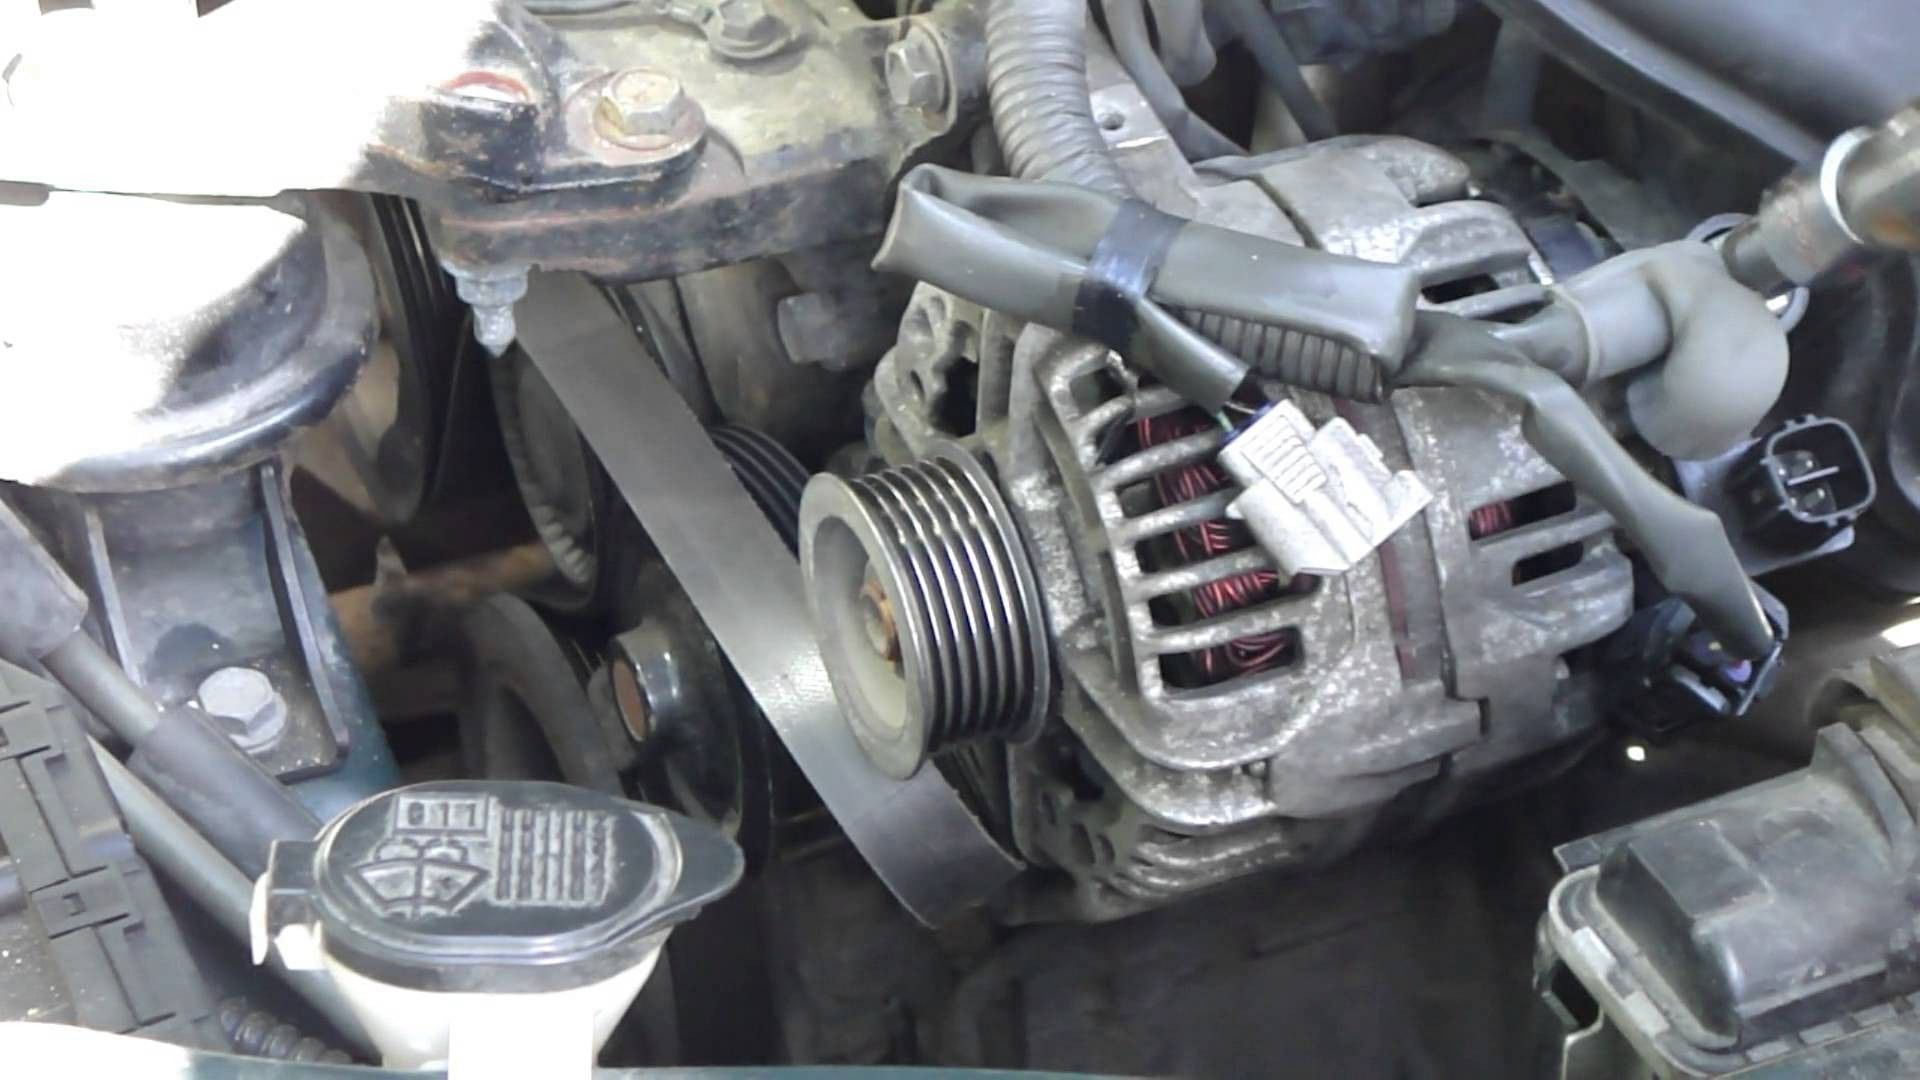 99 Toyota Camry Engine Diagram Part 1 Of 10 Remove Tranny 1994 How To Change Alternator Corolla Vvt I Years 2000